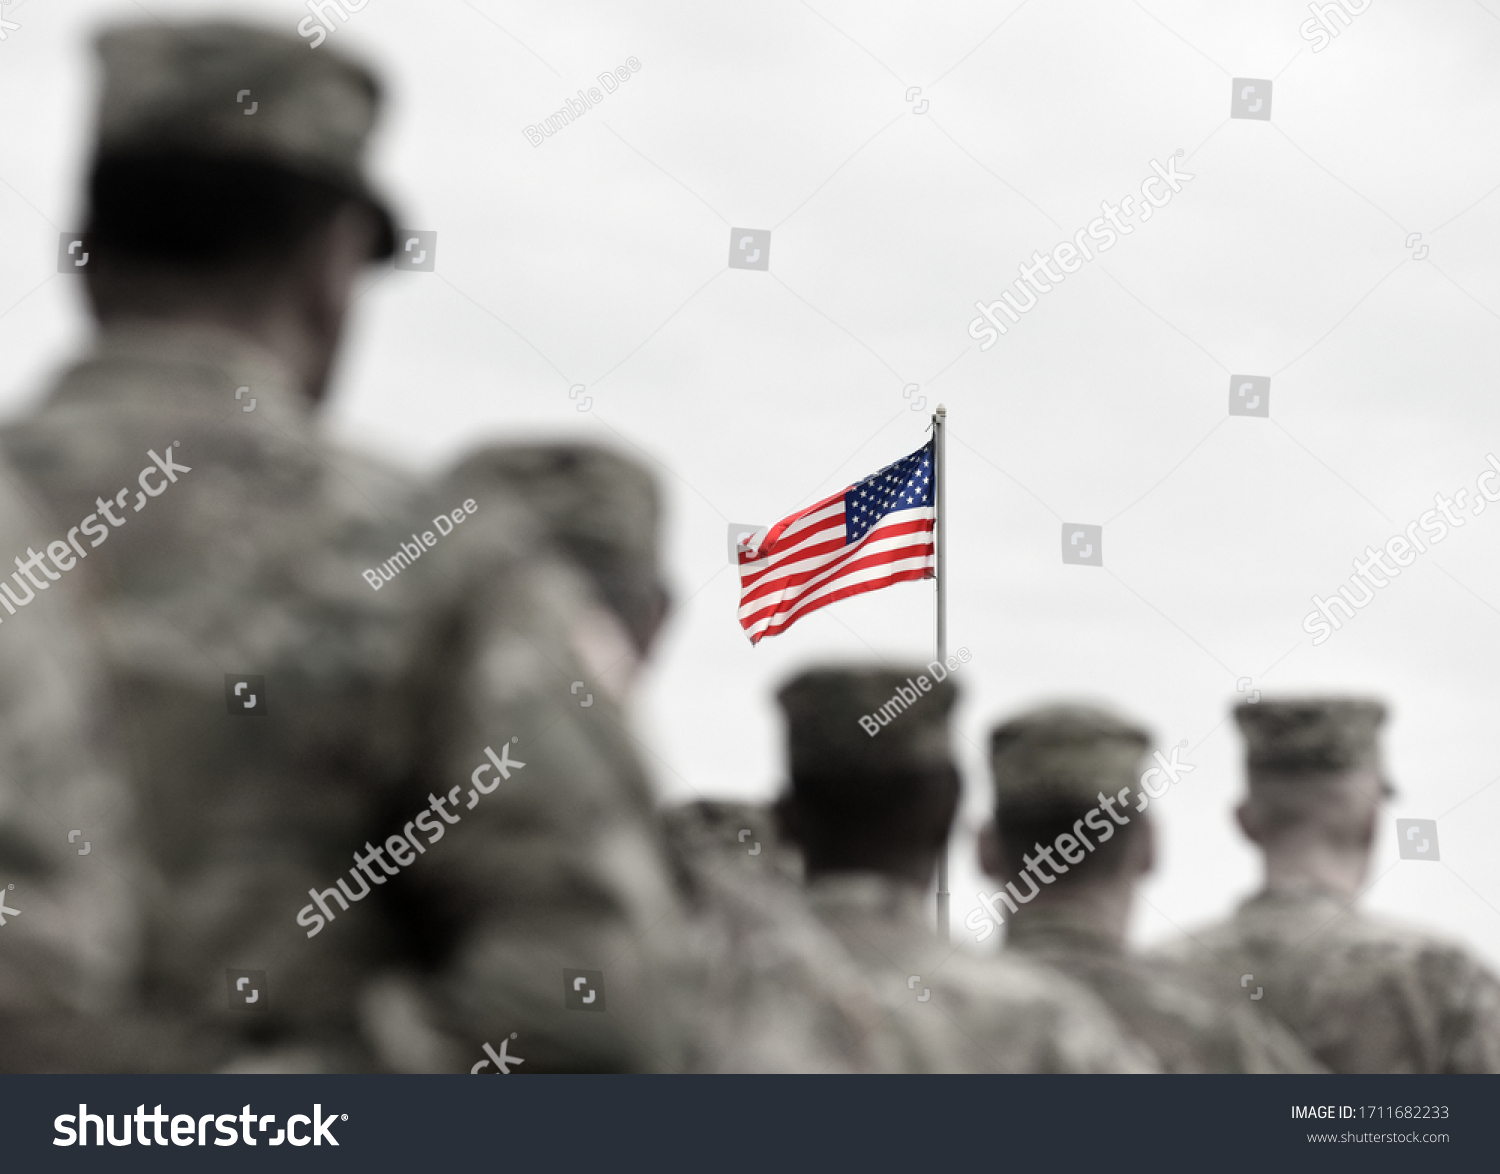 Memorial day. Veterans Day. US soldiers. US Army. The United States Armed Forces. Military forces of the United States of America. #1711682233